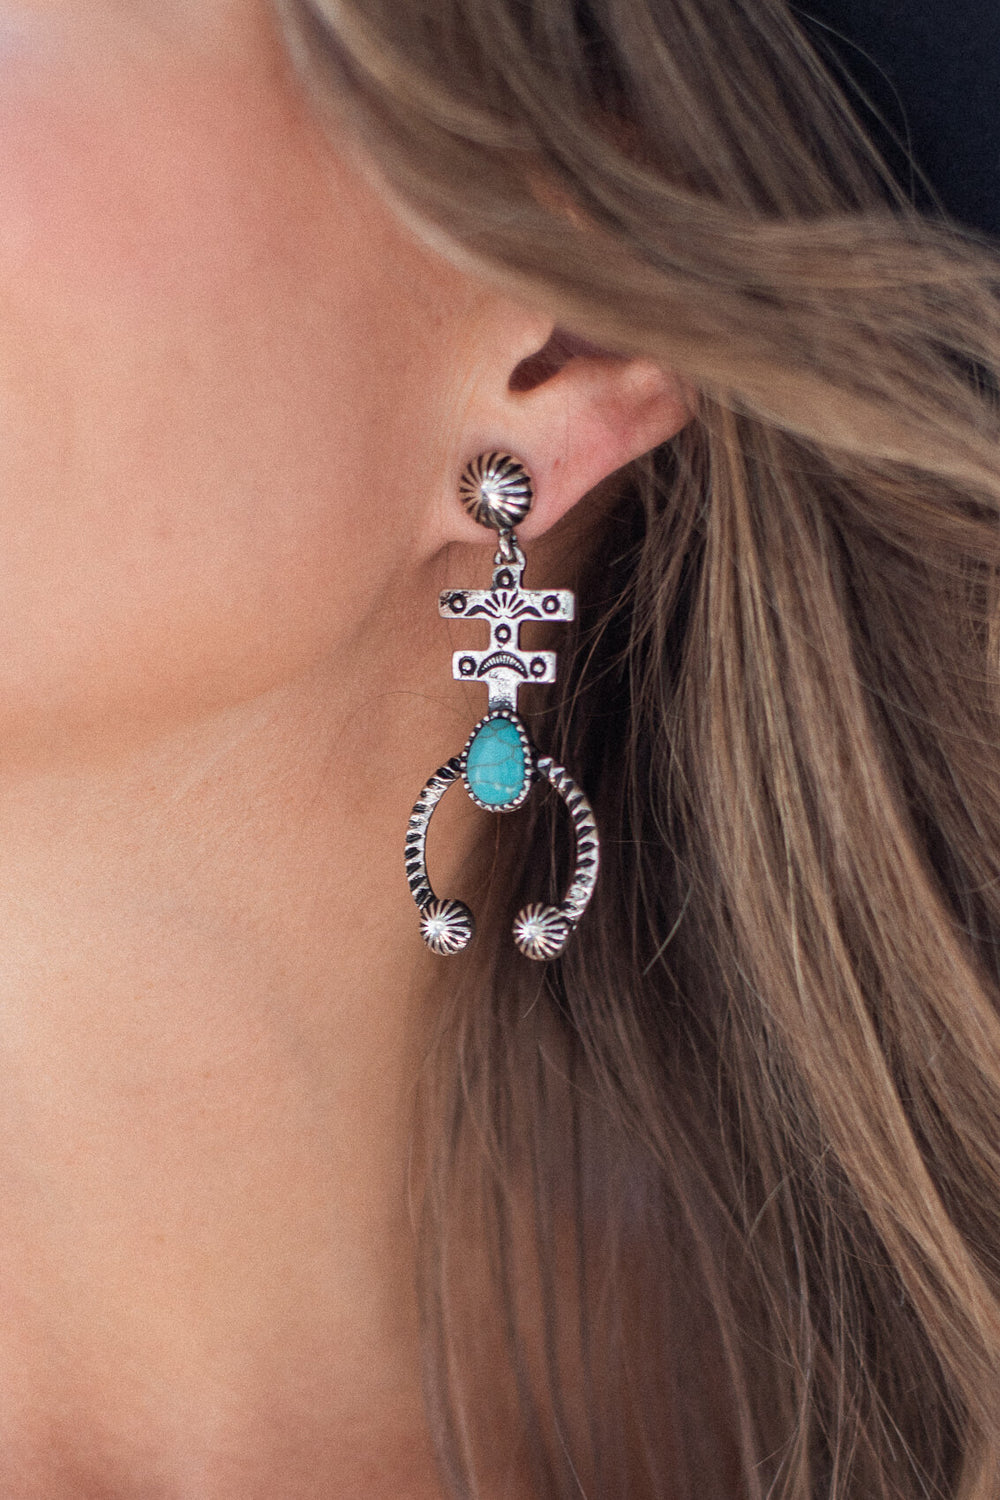 Hand crafted Navojo inspired earrings with hammered sterling detailing cute country outfit for women Kariella Albuquerque Earring